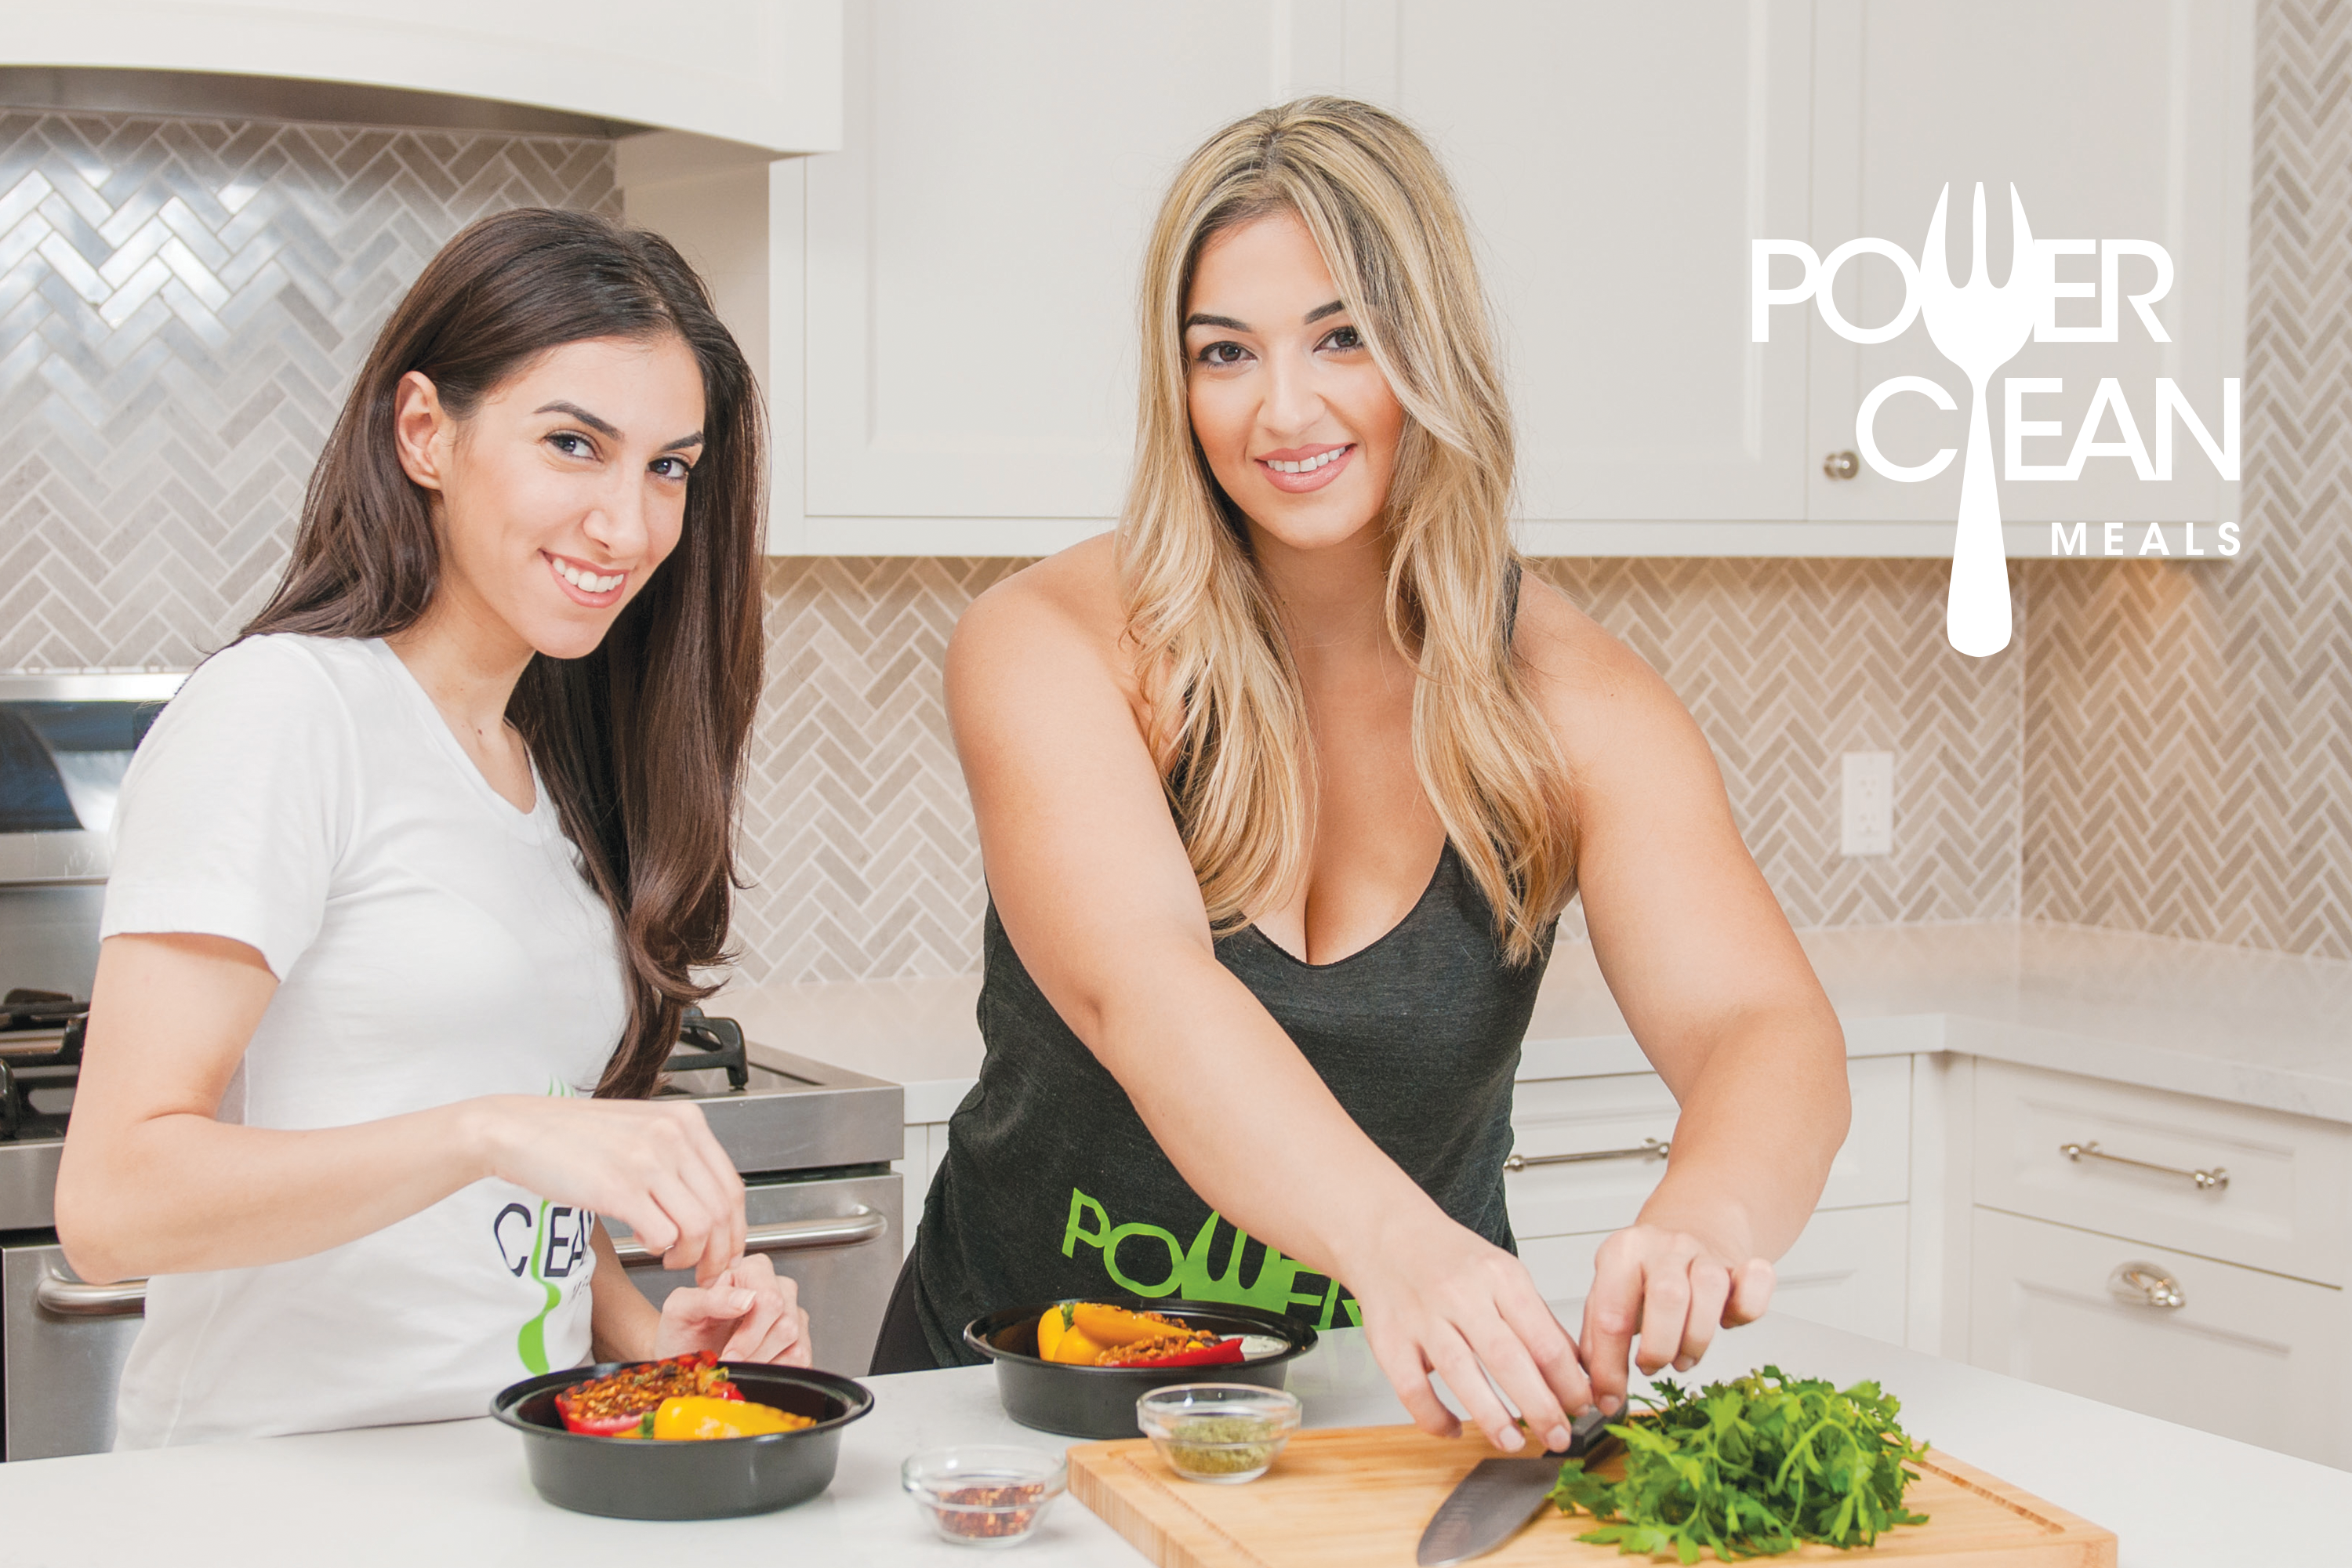 powerclean-meals-logo-claricegomesdesigns